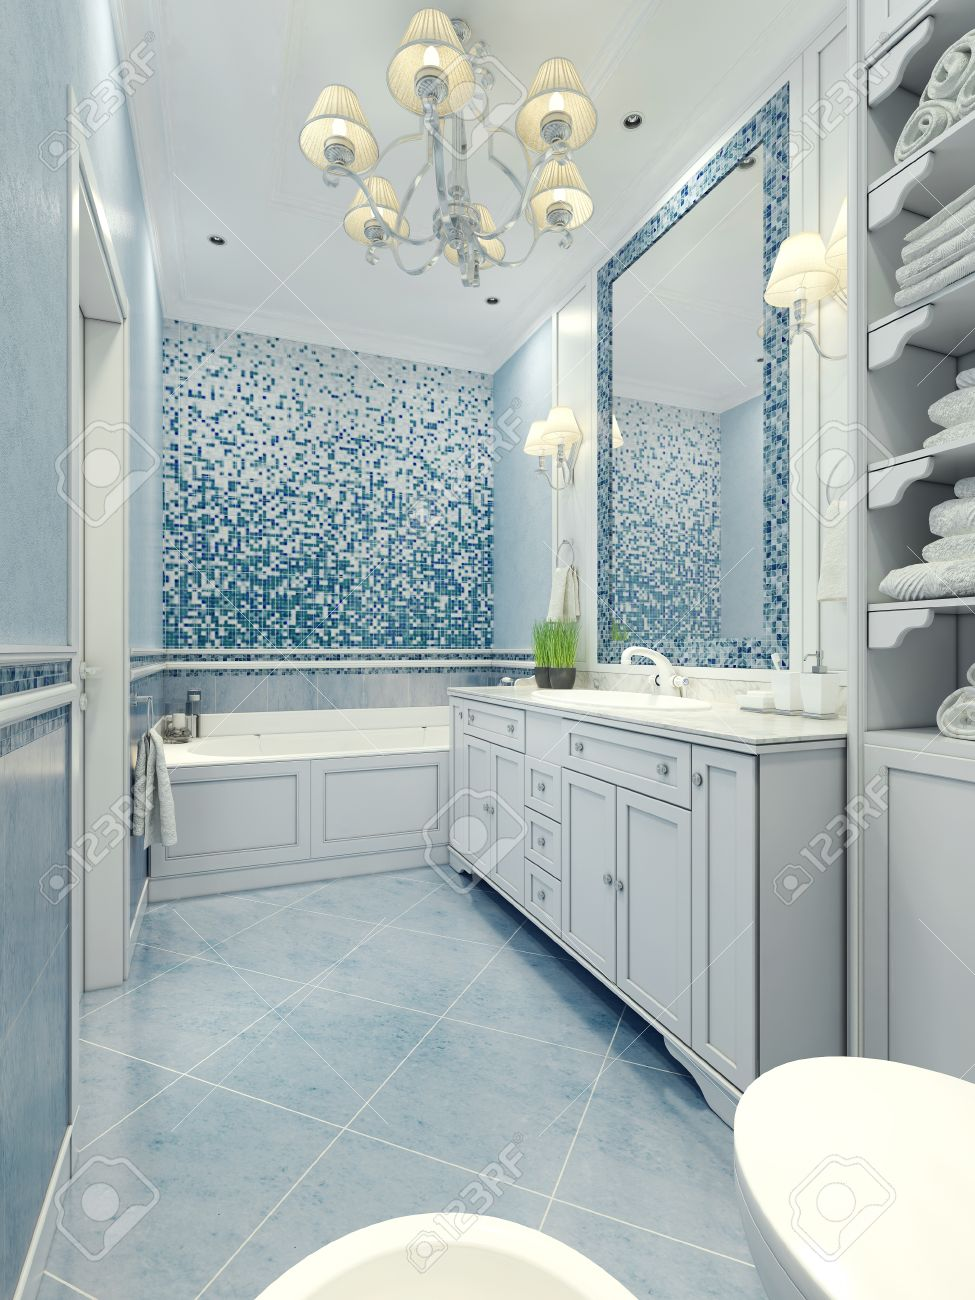 bathroom art deco style long bathroom with a mix of tile and